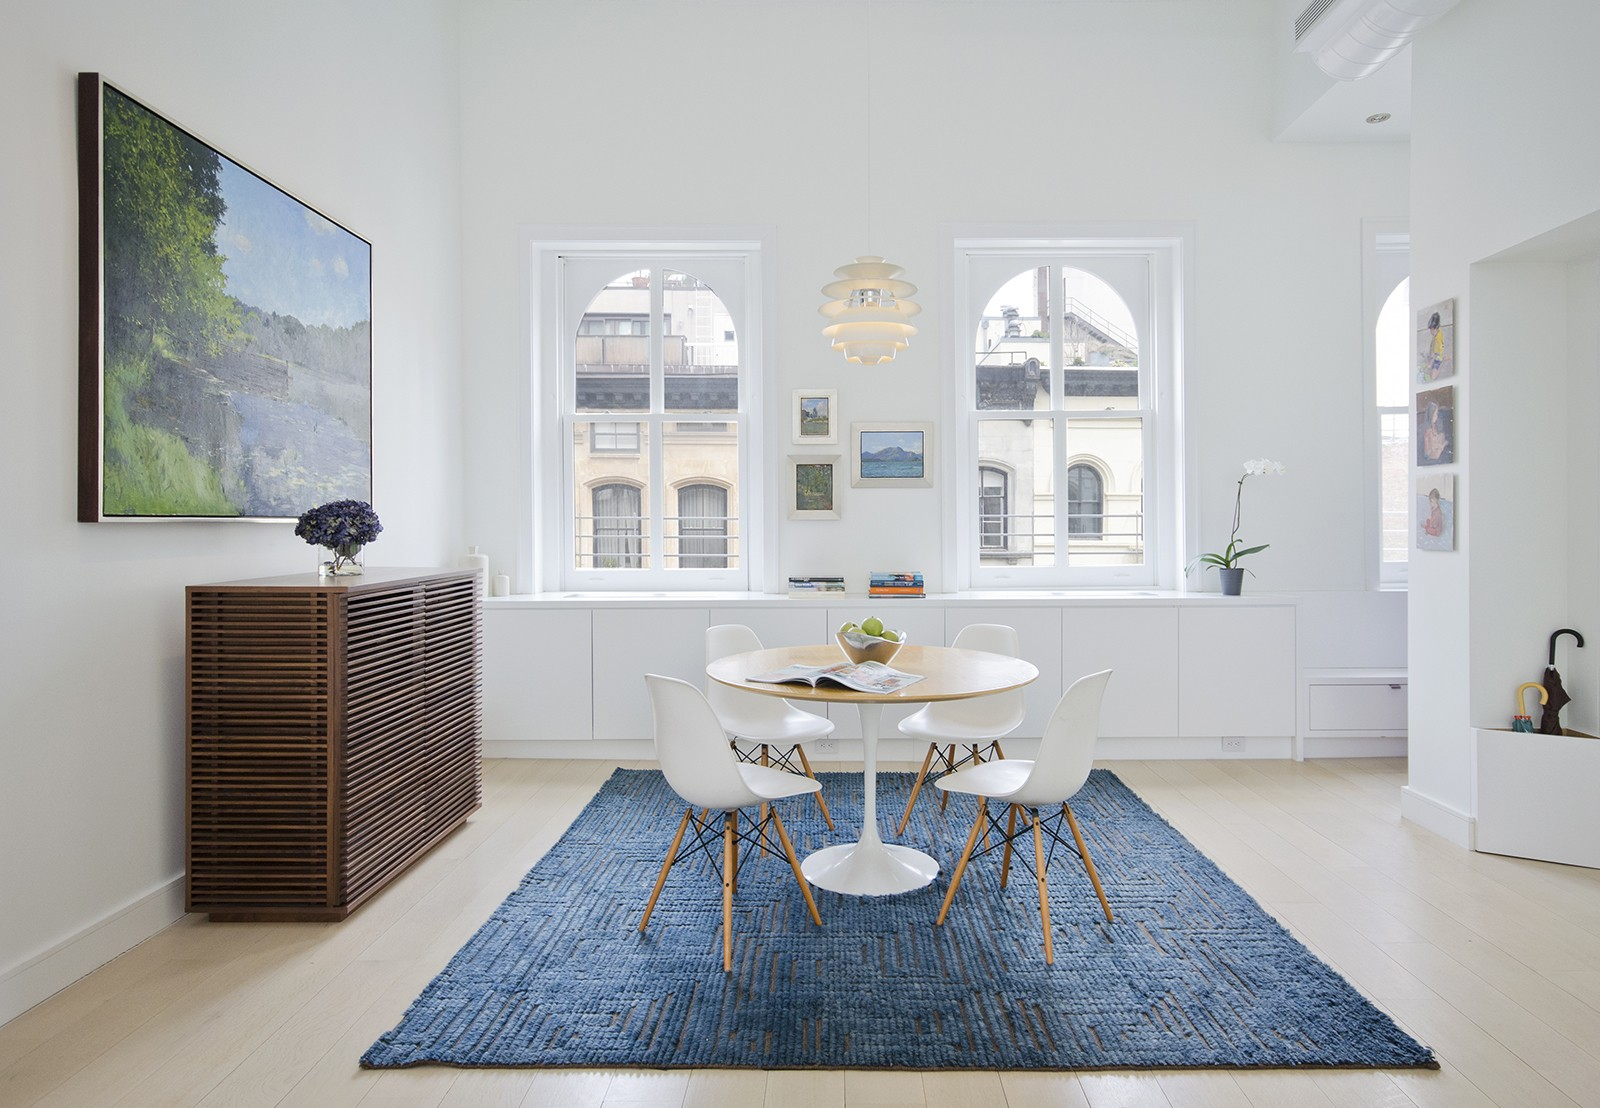 Articles about renovated tribeca loft modern aesthetic on Dwell.com - Dwell